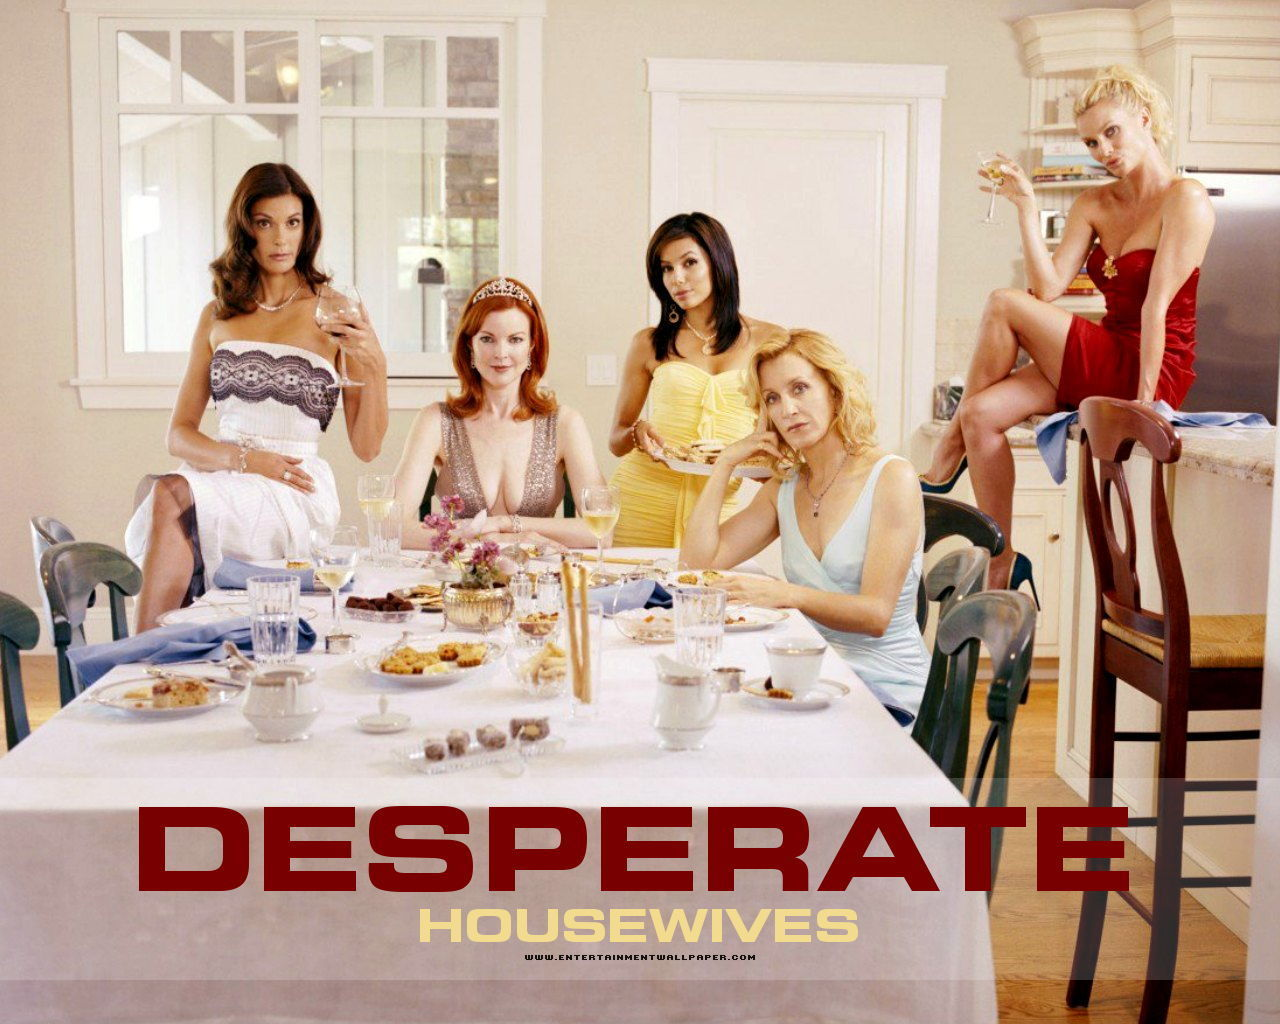 Desparate Housewive 64